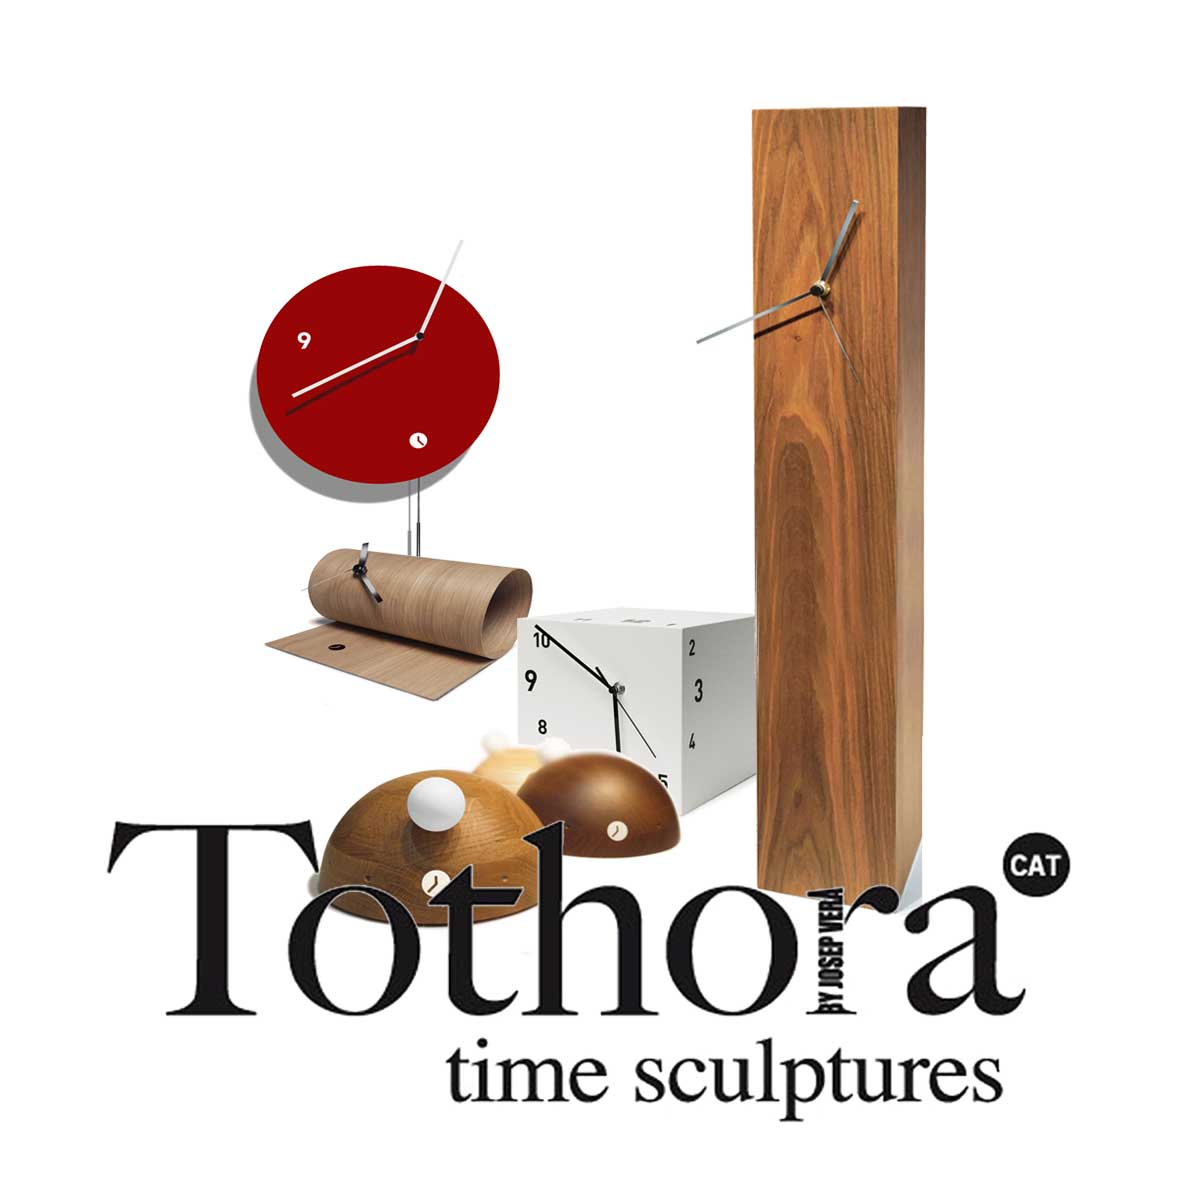 Tothora time sculpturs